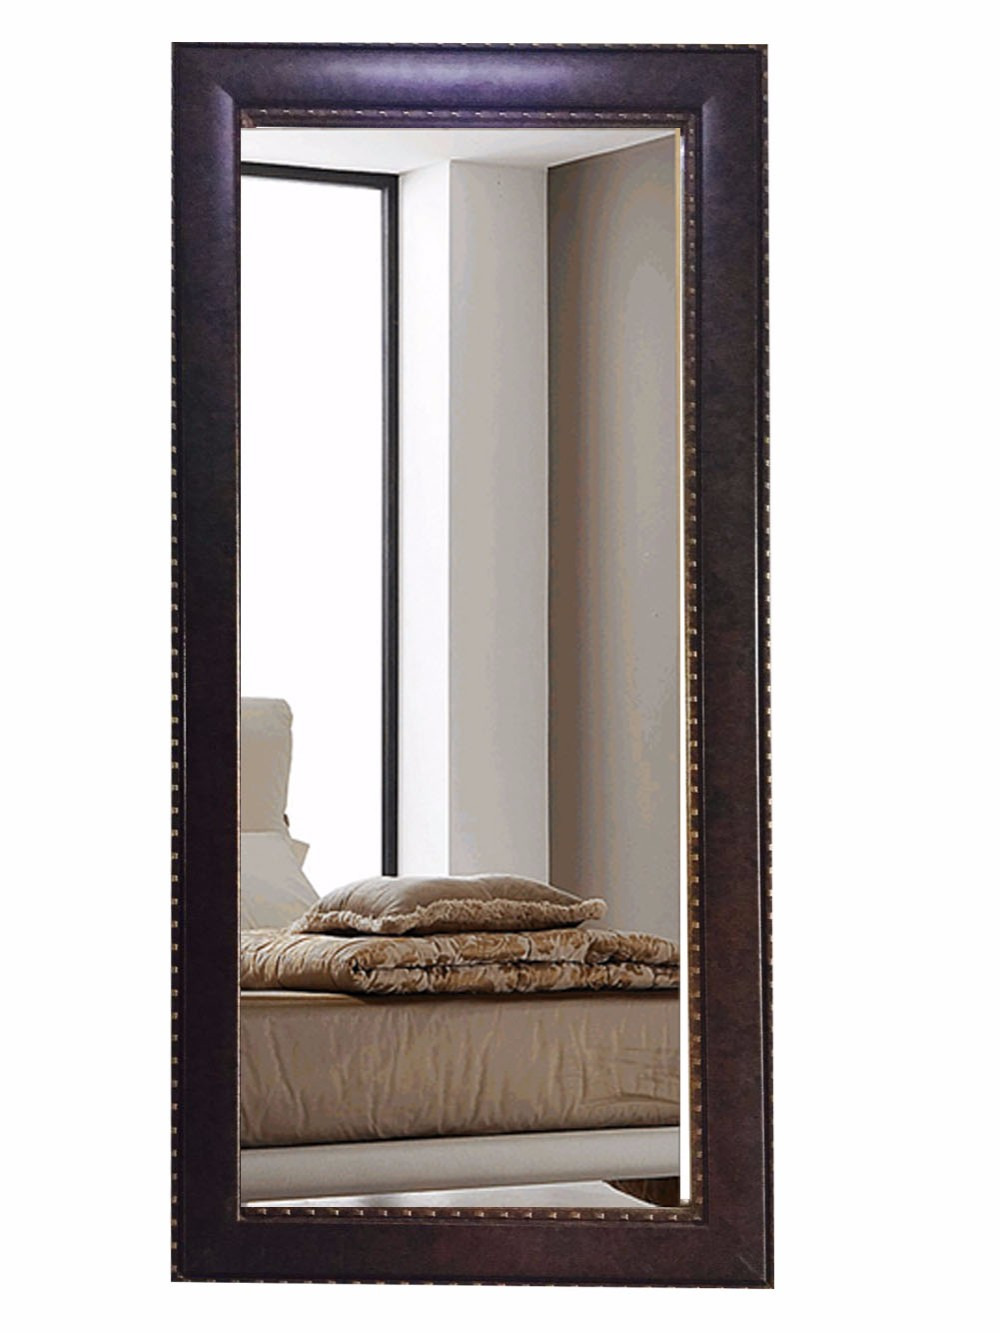 Decorative Bathroom Mirrors Beautiful Wooden Framed Size Interior Decorative Wall Mirrors Bathroom Buy Bathroom Mirror Decorative Mirror Wall Mirror Product On Alibaba